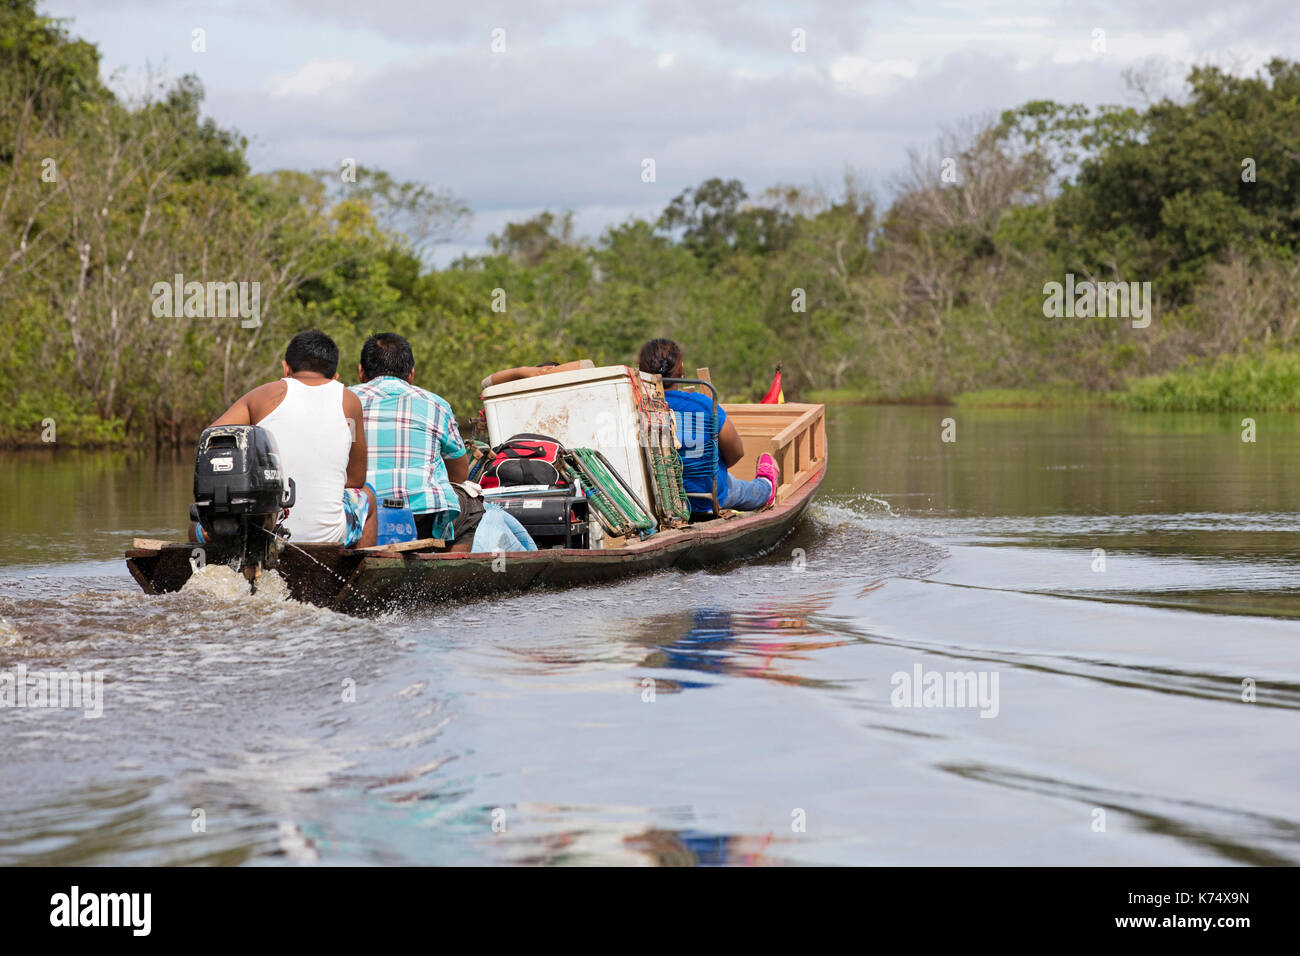 Local Bolivians moving furniture by canoe with outboard motor on the Yacuma River in the Pampas del Yacuma in Bolivia - Stock Image